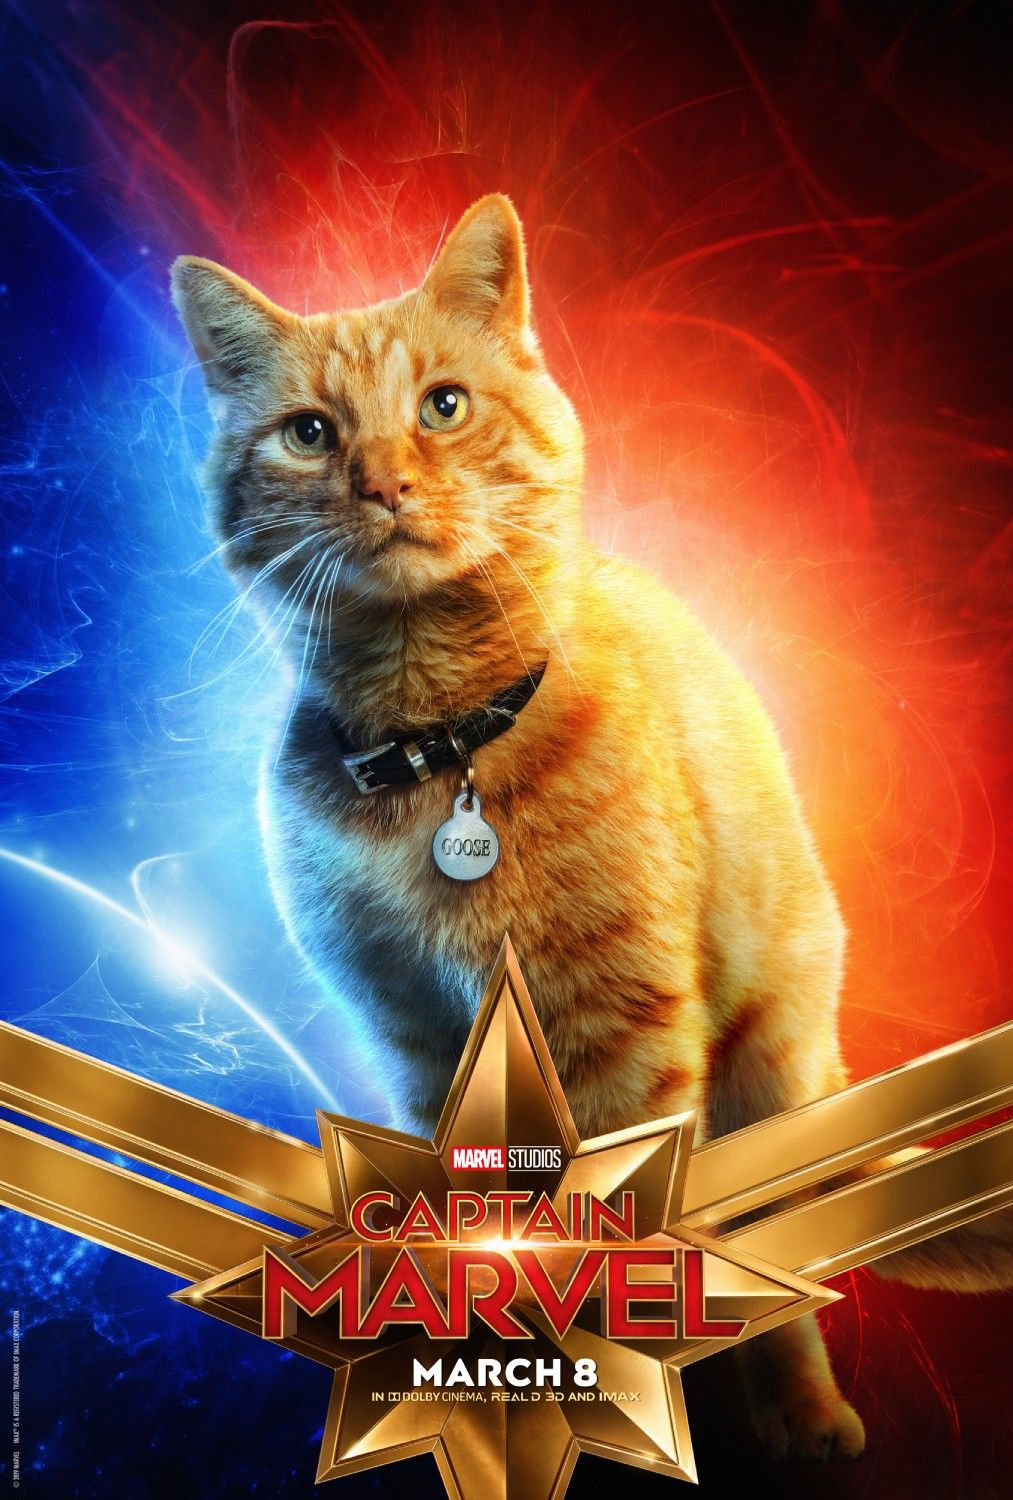 Captain-Marvel-Goose-Poster.jpg?q=50&fit